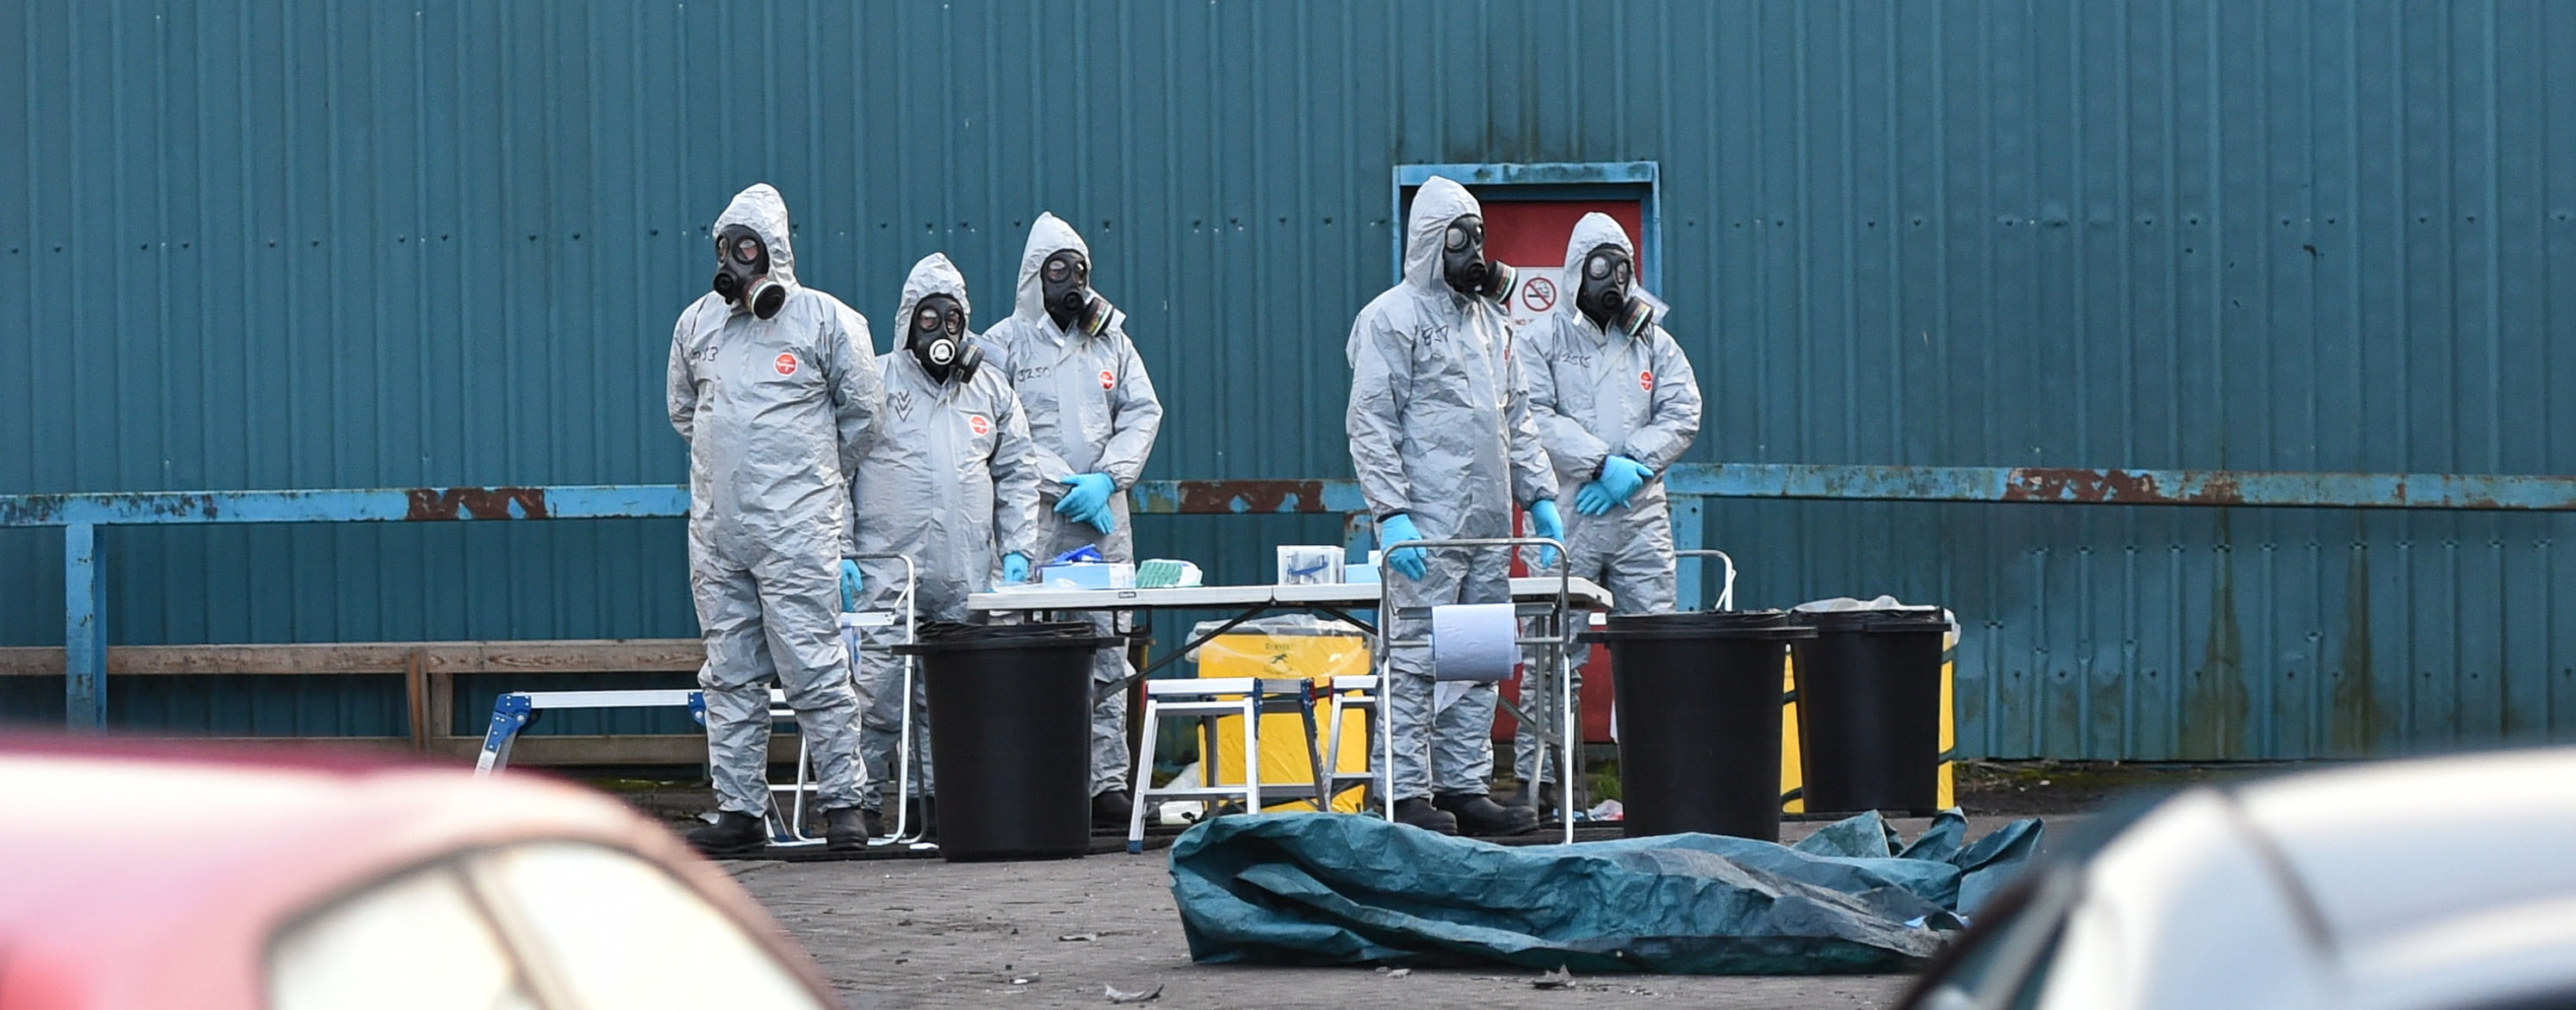 Police continue to investigate poisoning of Sergei Skripal In Salisbury (Photo: Rufus Cox/Getty Images)